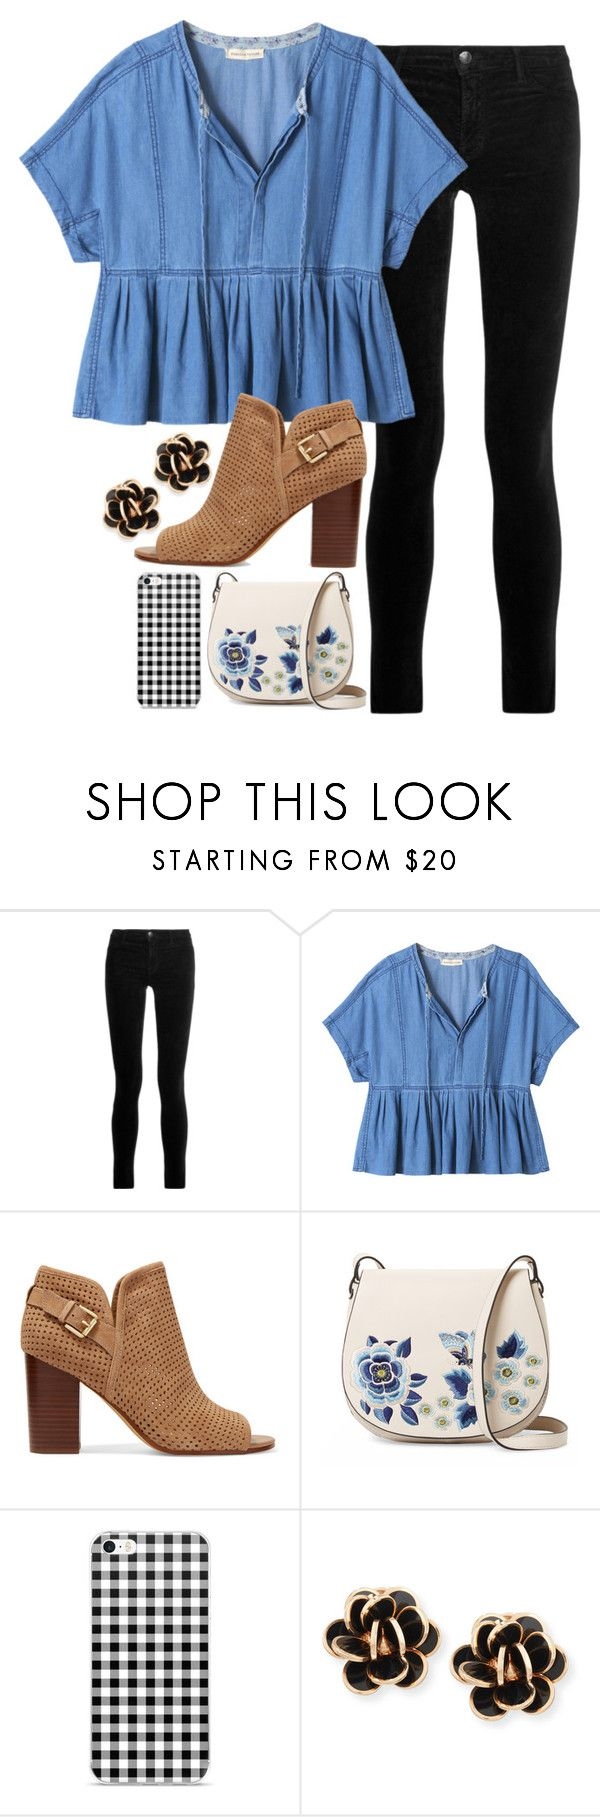 """""""I'm gonna harden my heart """" by legitimately-kierstin ❤ liked on Polyvore featuring J Brand, Rebecca Taylor, Sam Edelman, French Connection and Chantecler"""